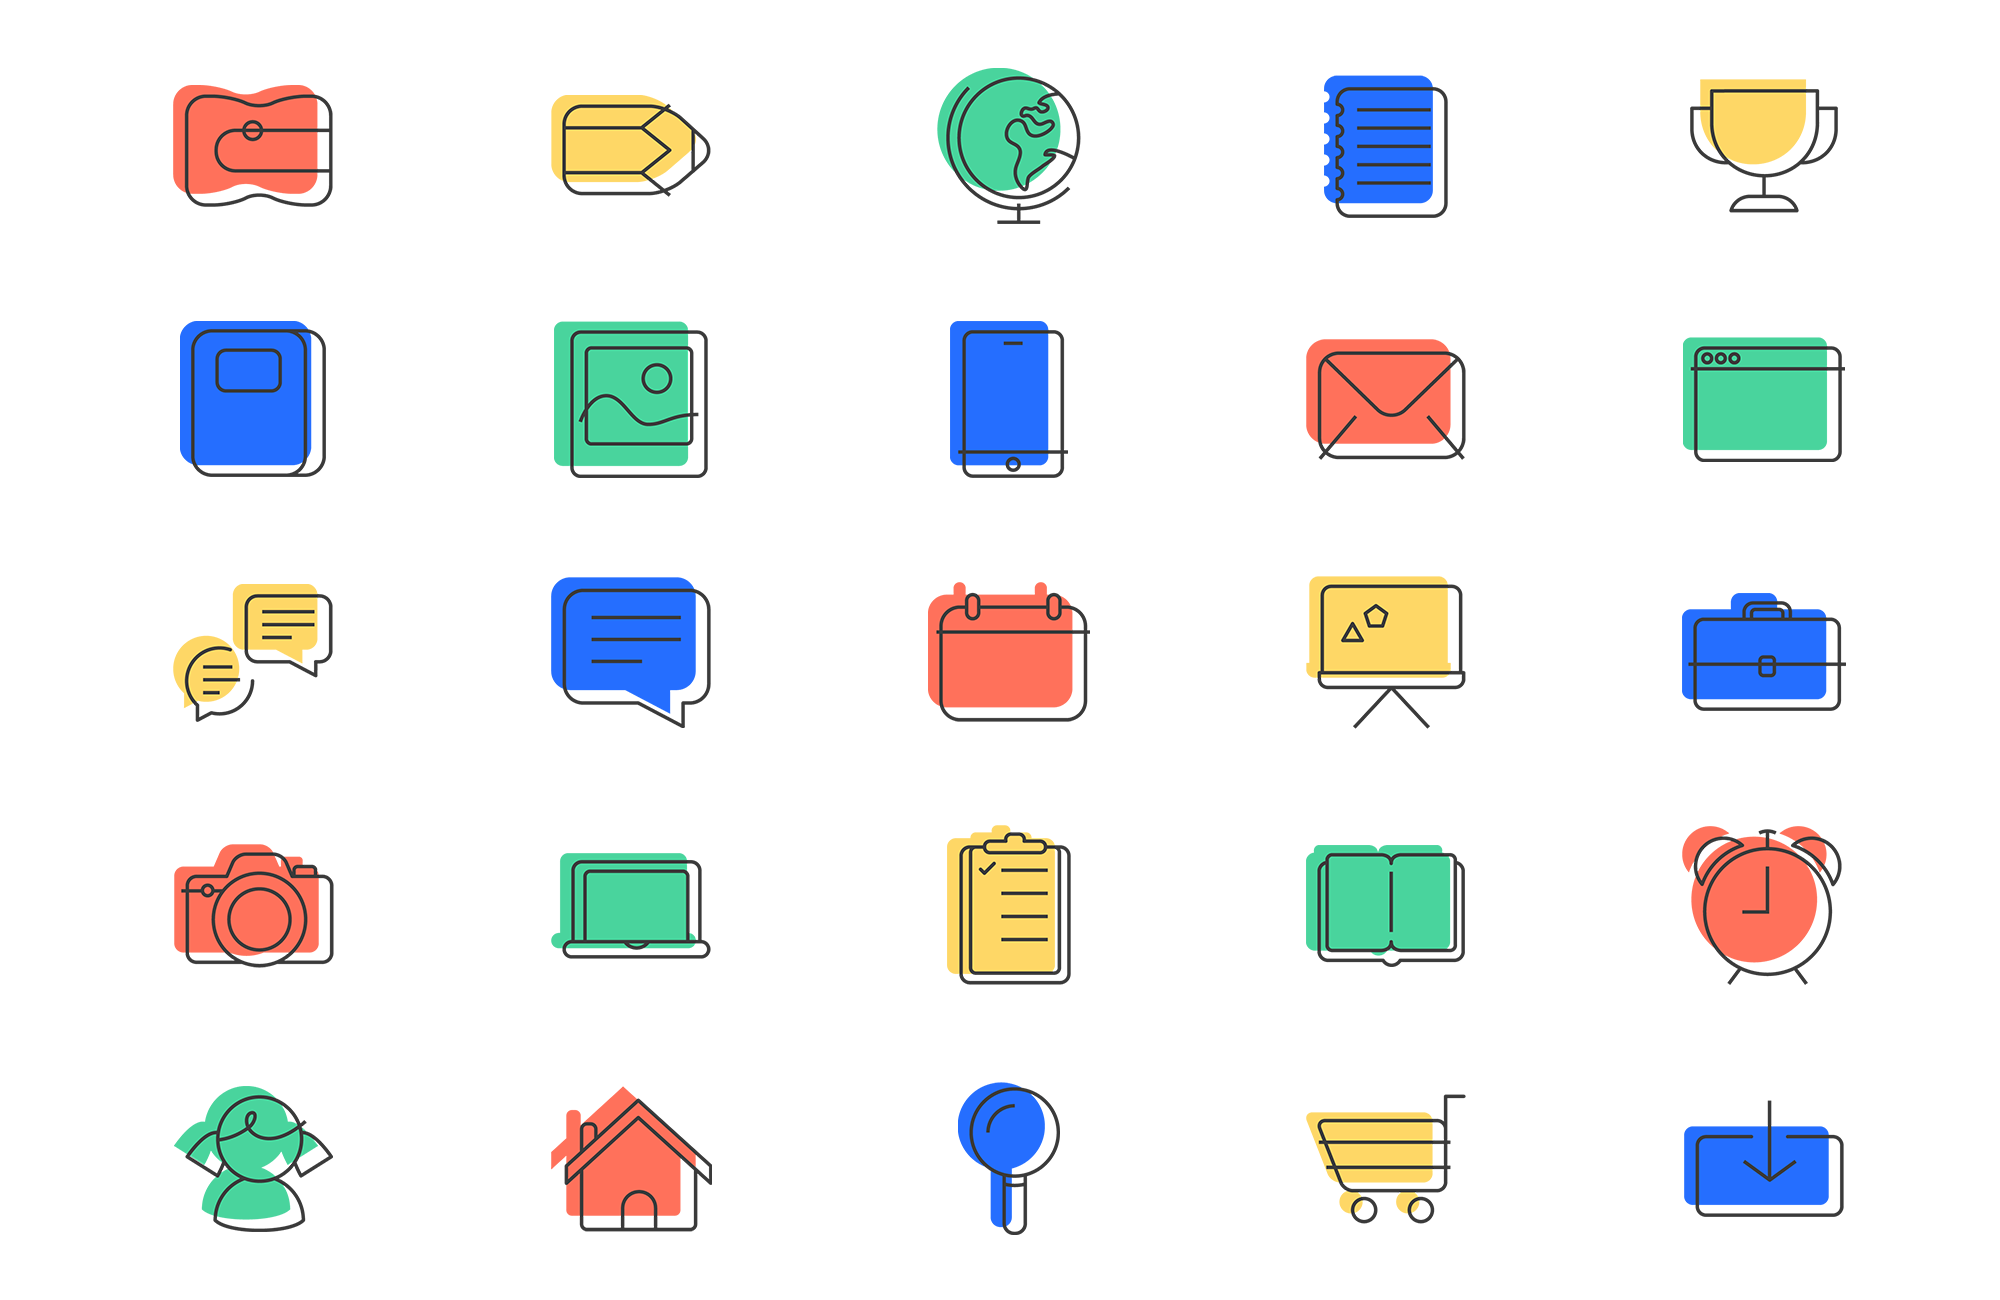 icons_2profes